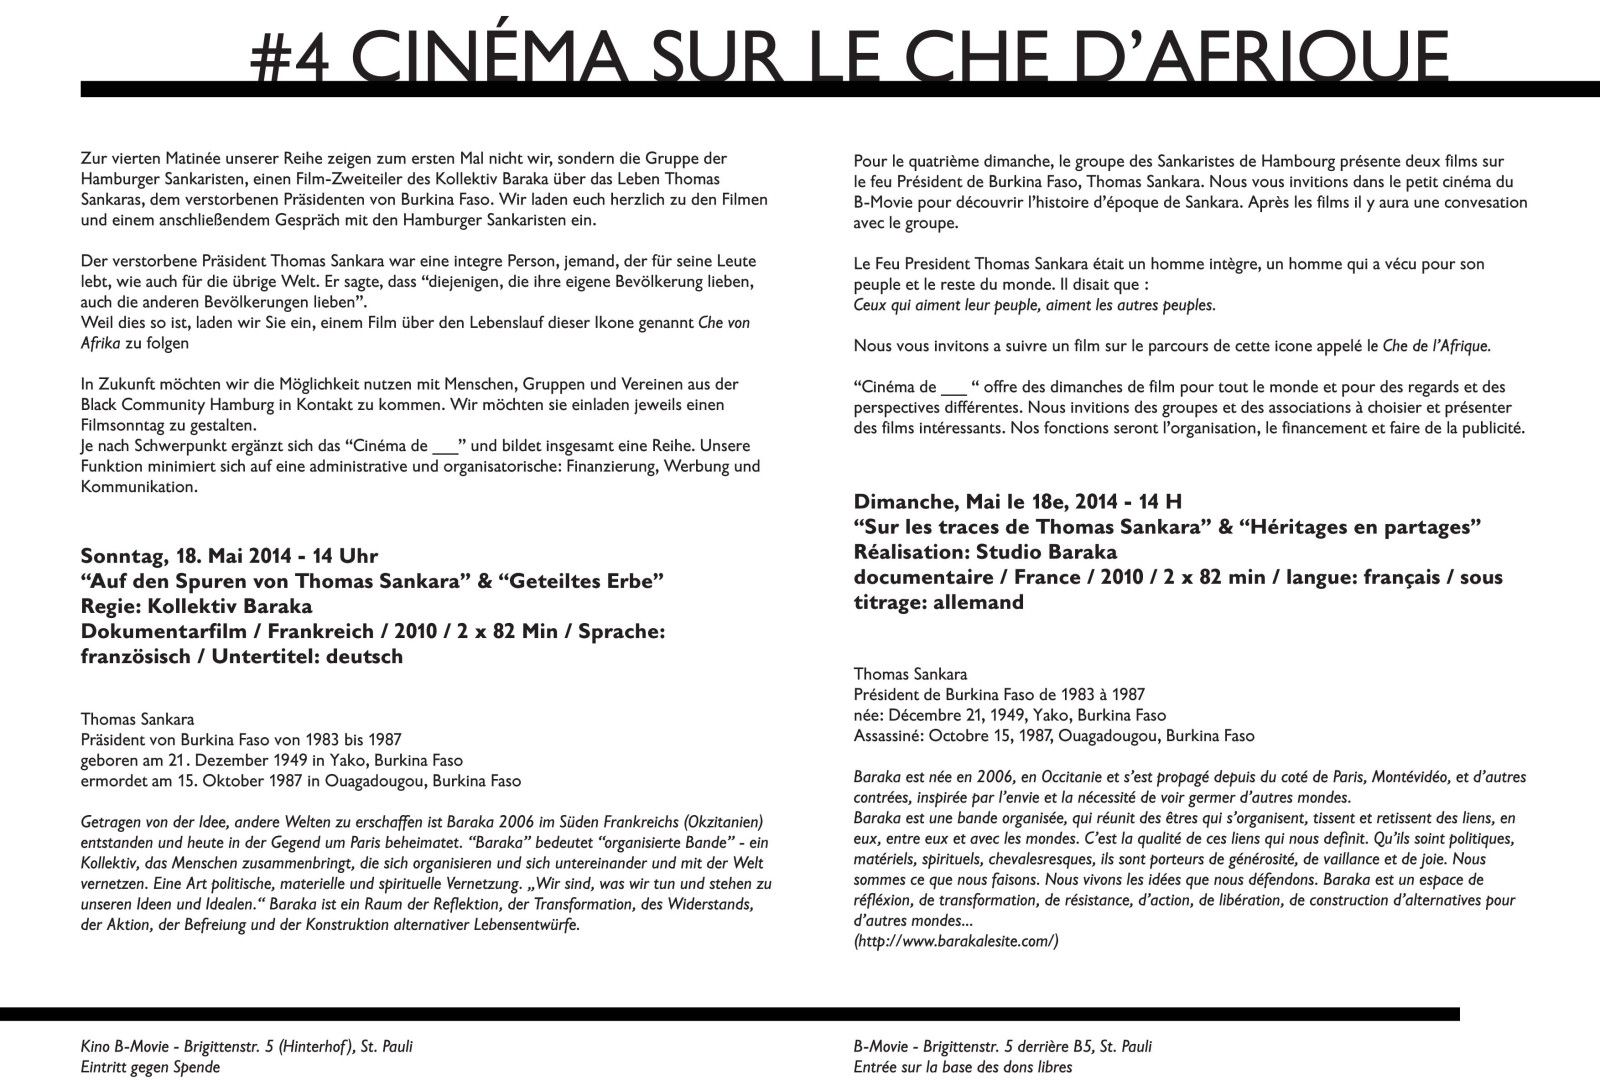 http://a400.idata.over-blog.com/3/12/84/22/Flyer-Cinema-2.jpg